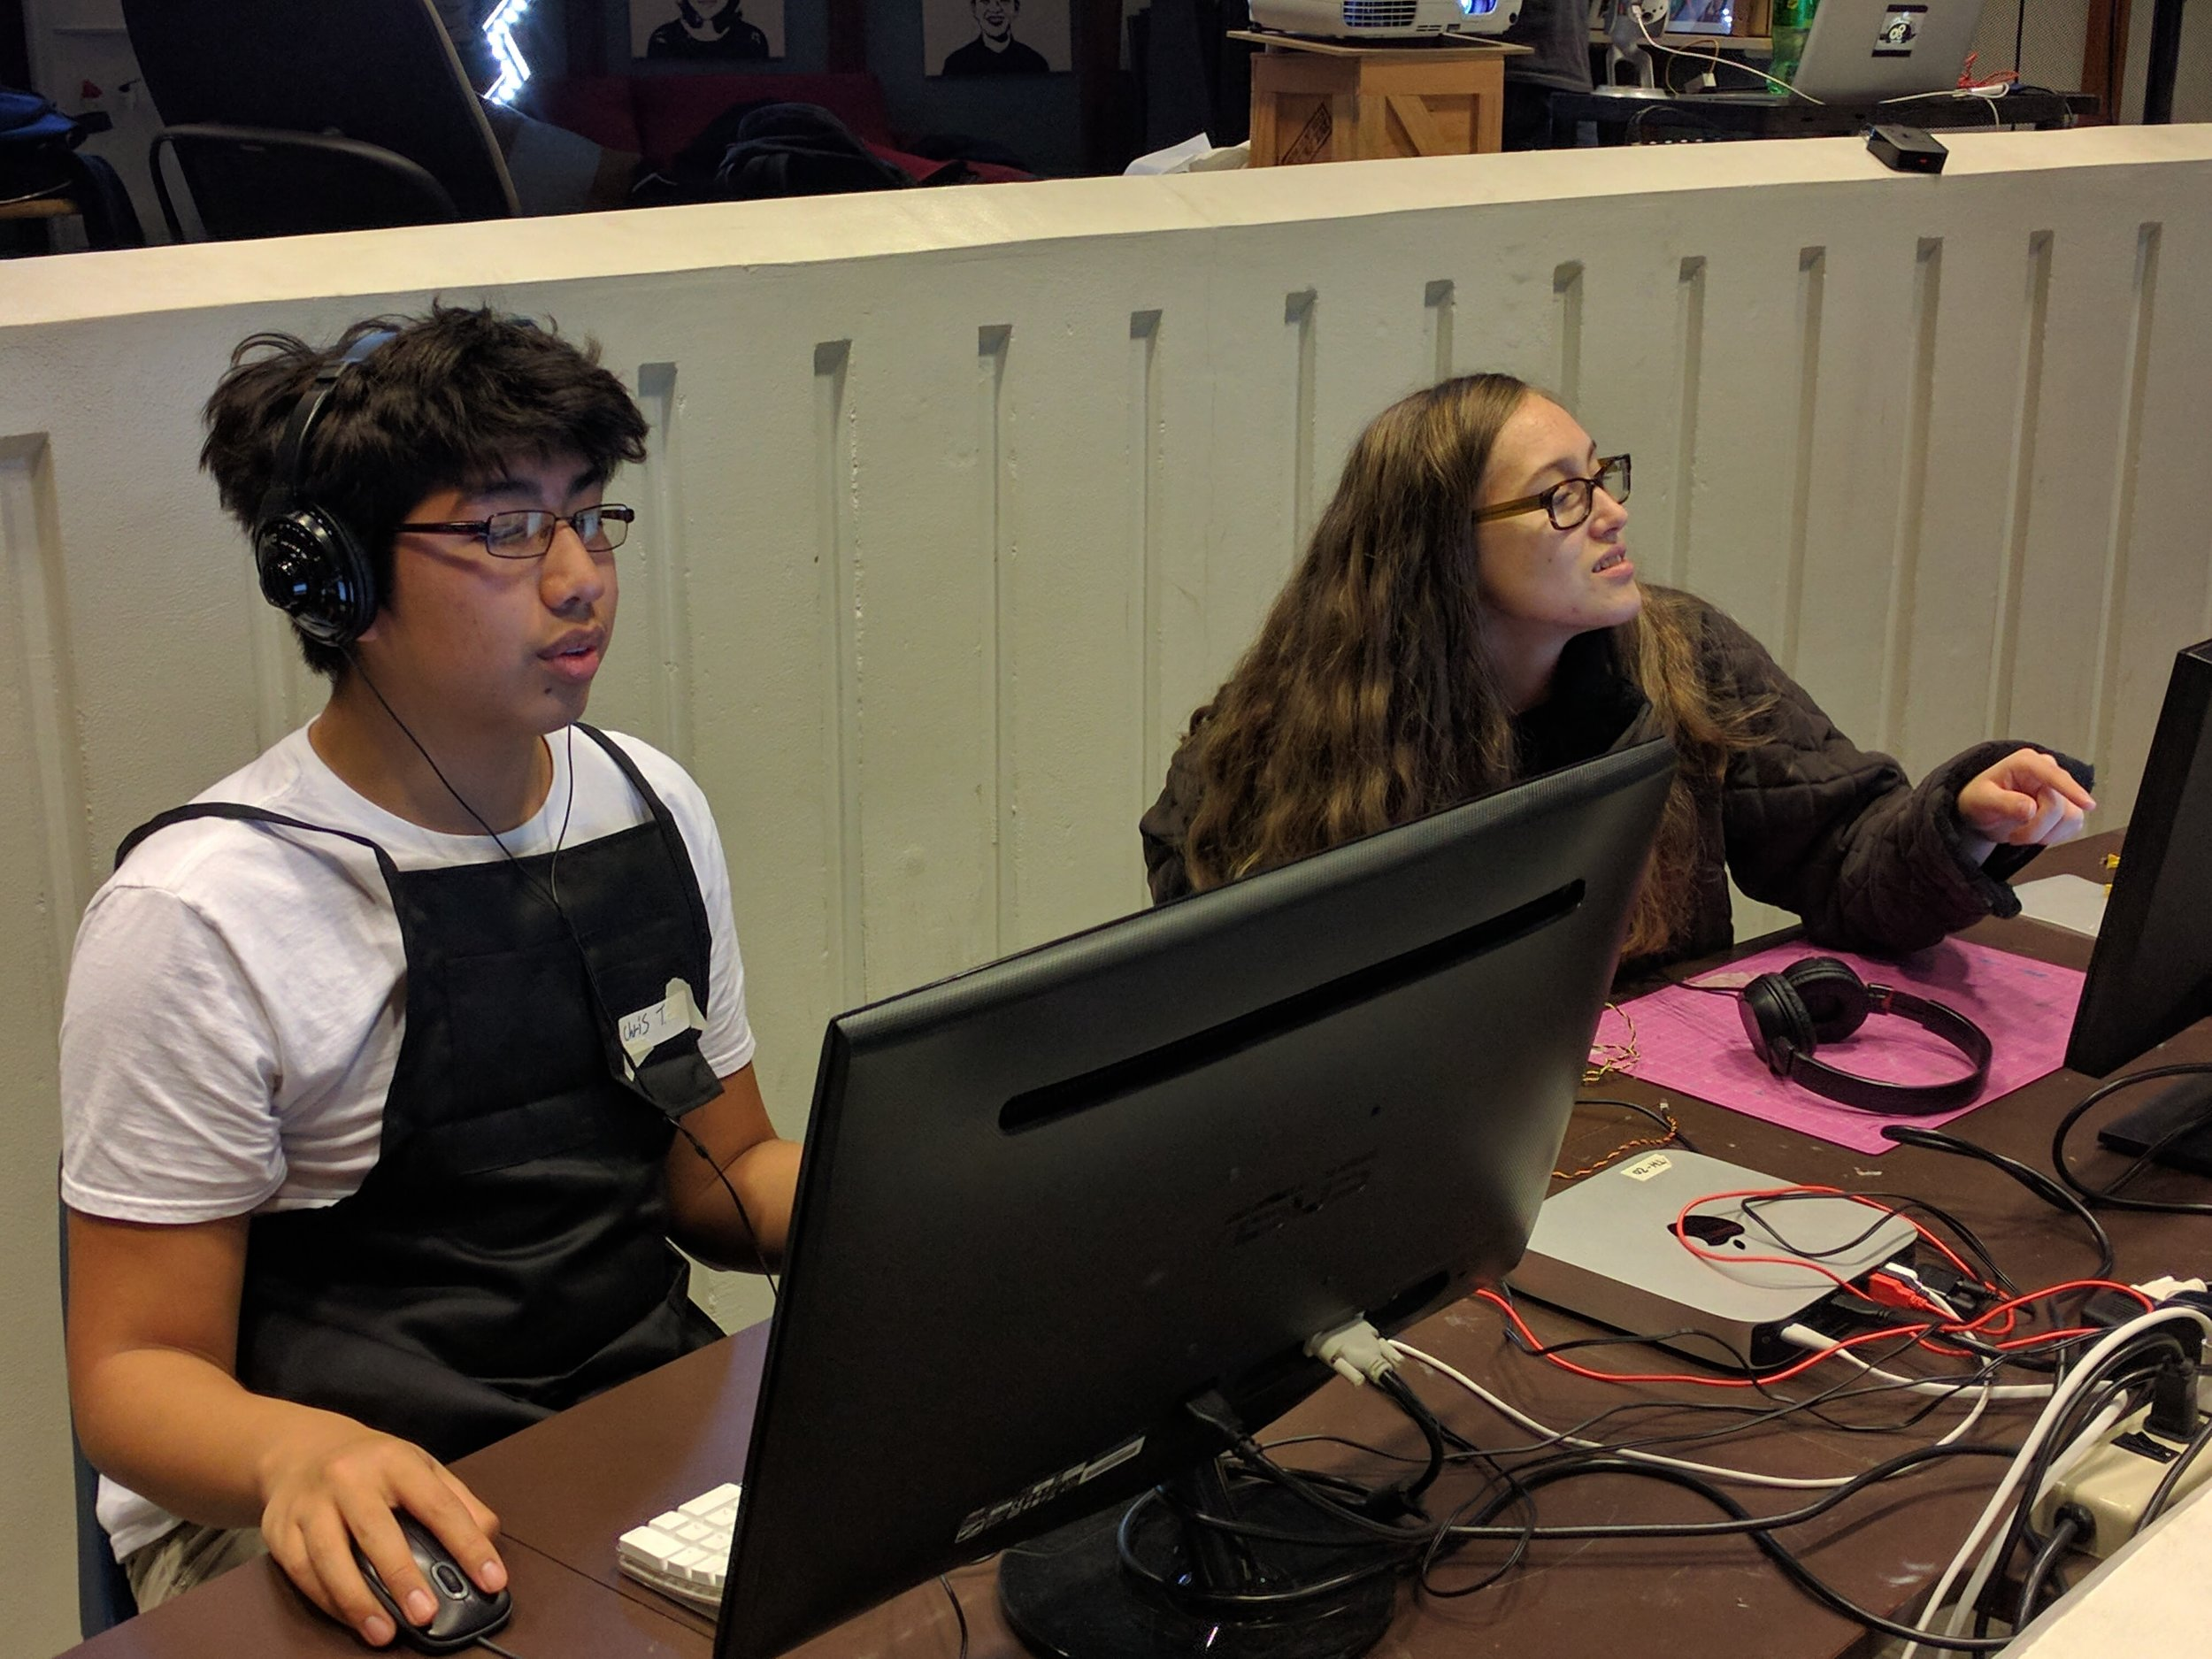 Chris and Ana building their programming skills.